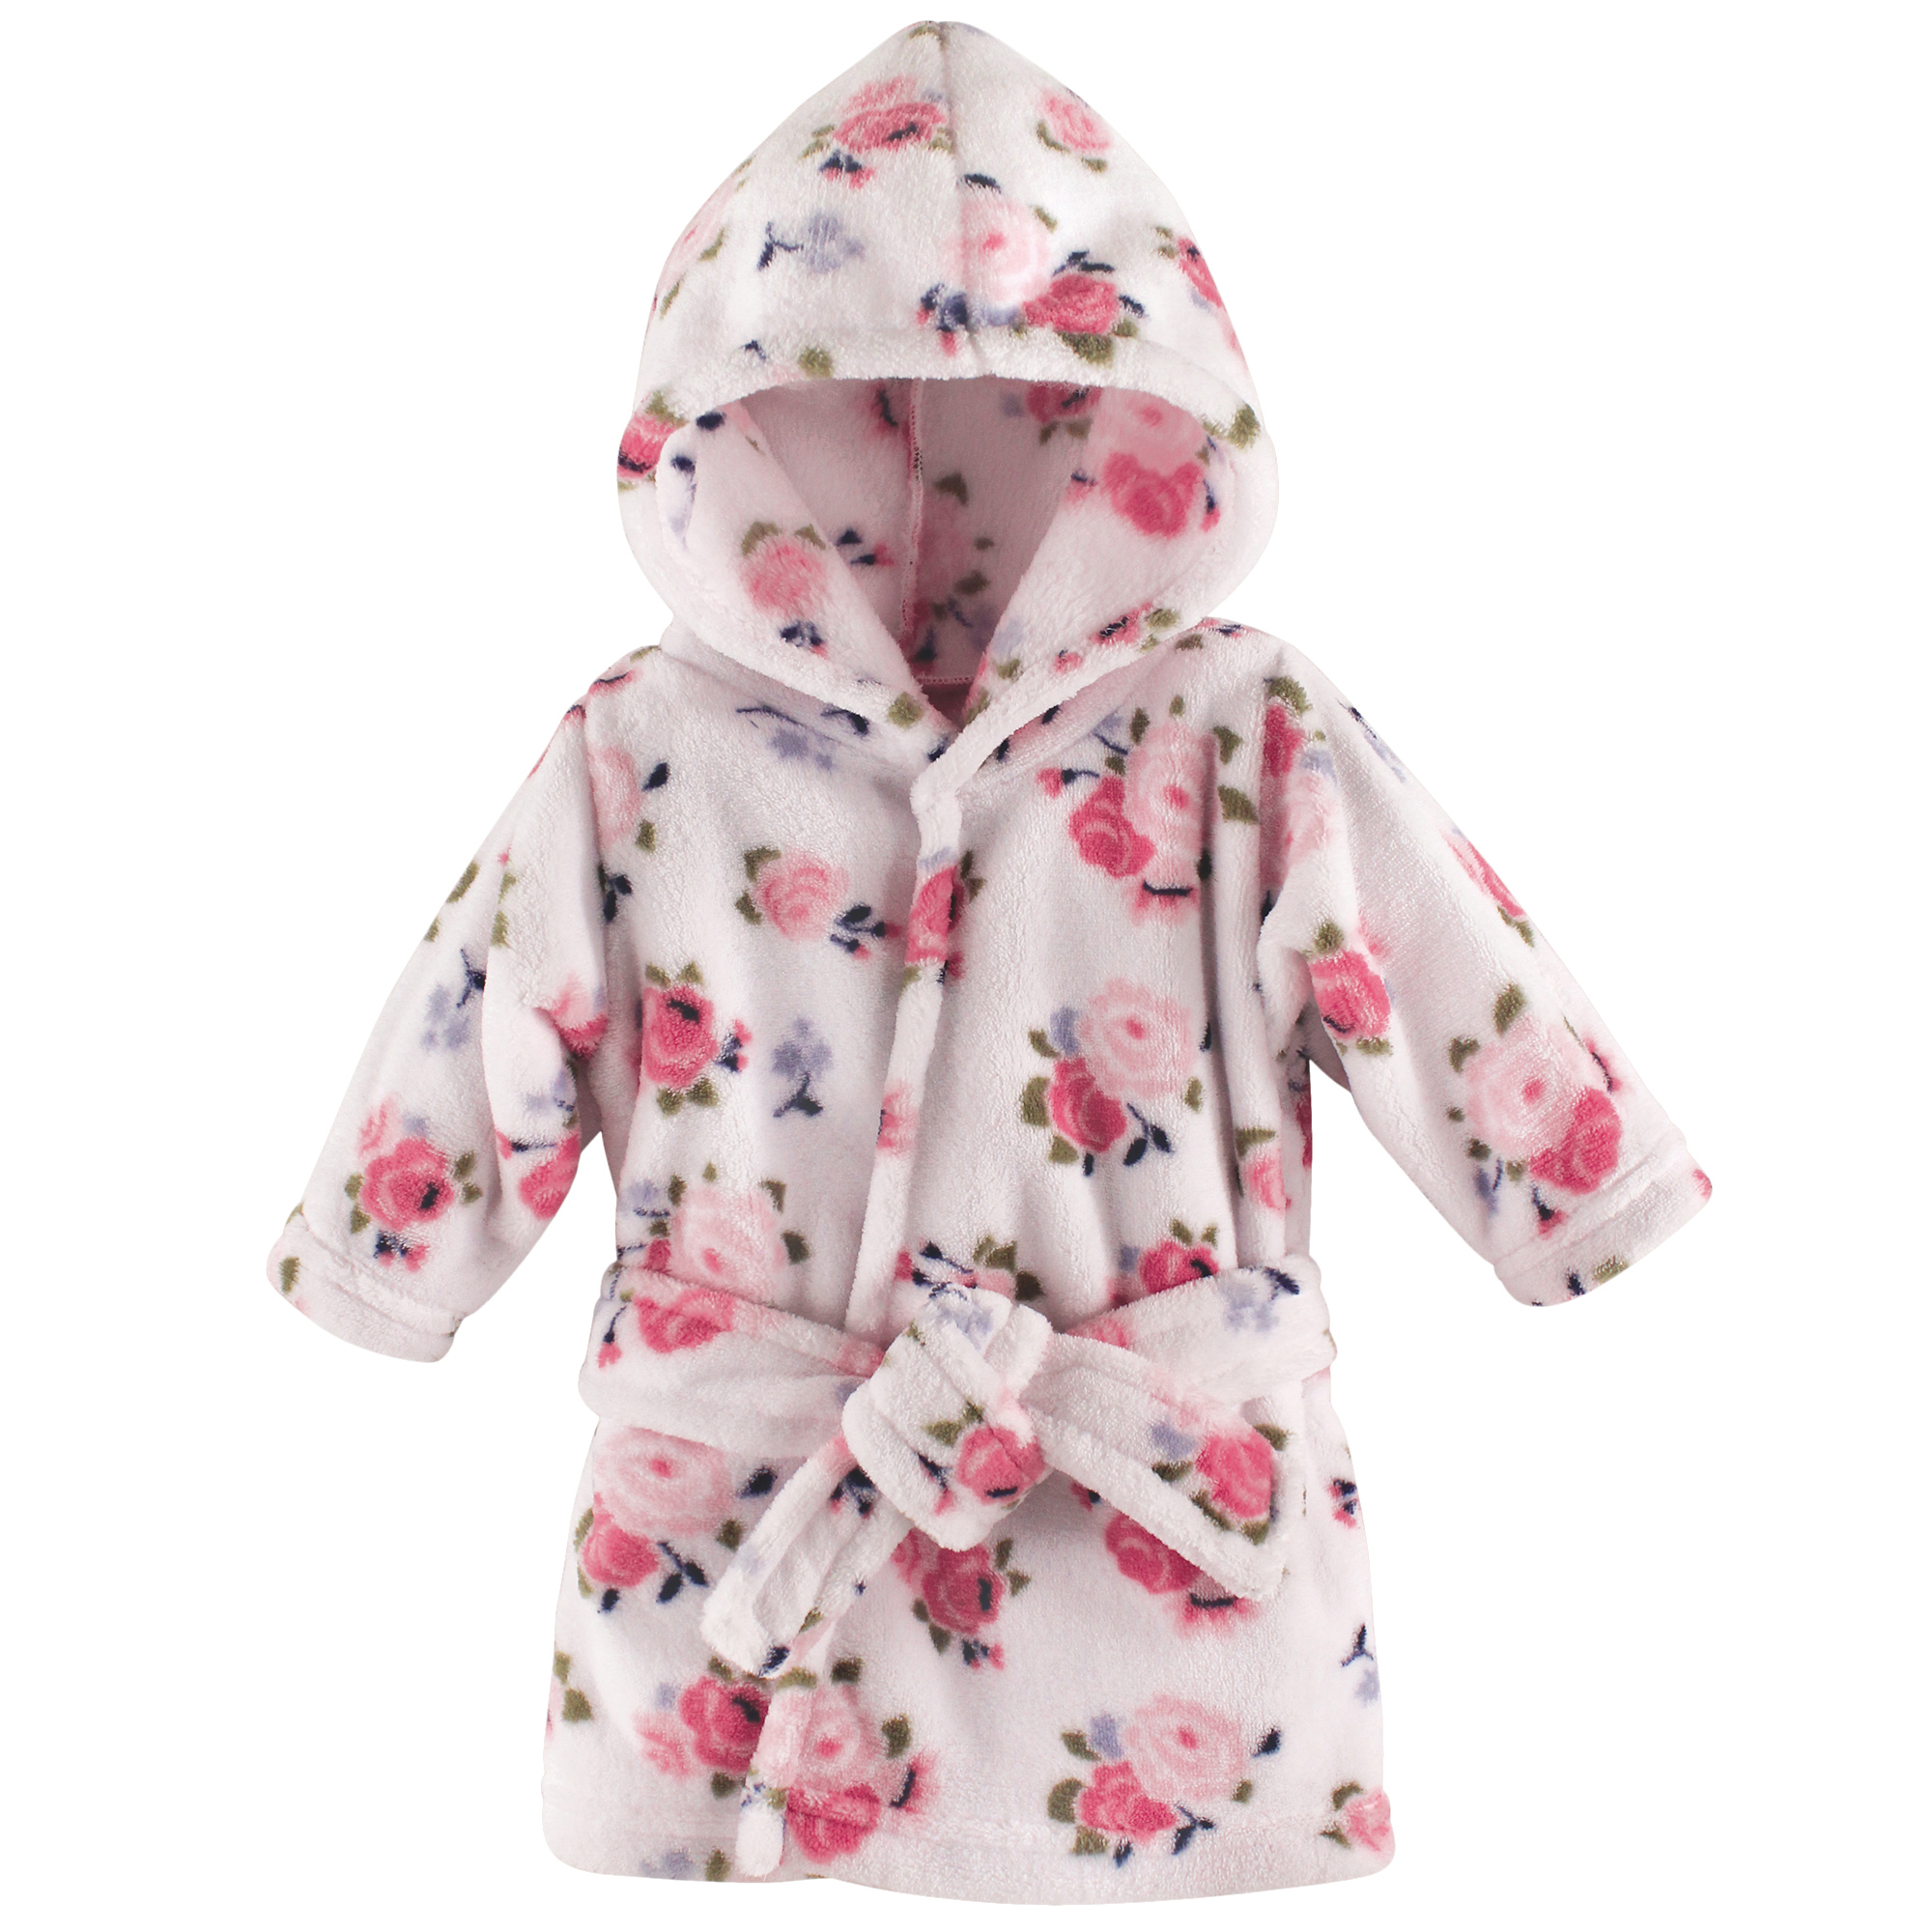 Baby Coral Fleece Bathrobe, Floral